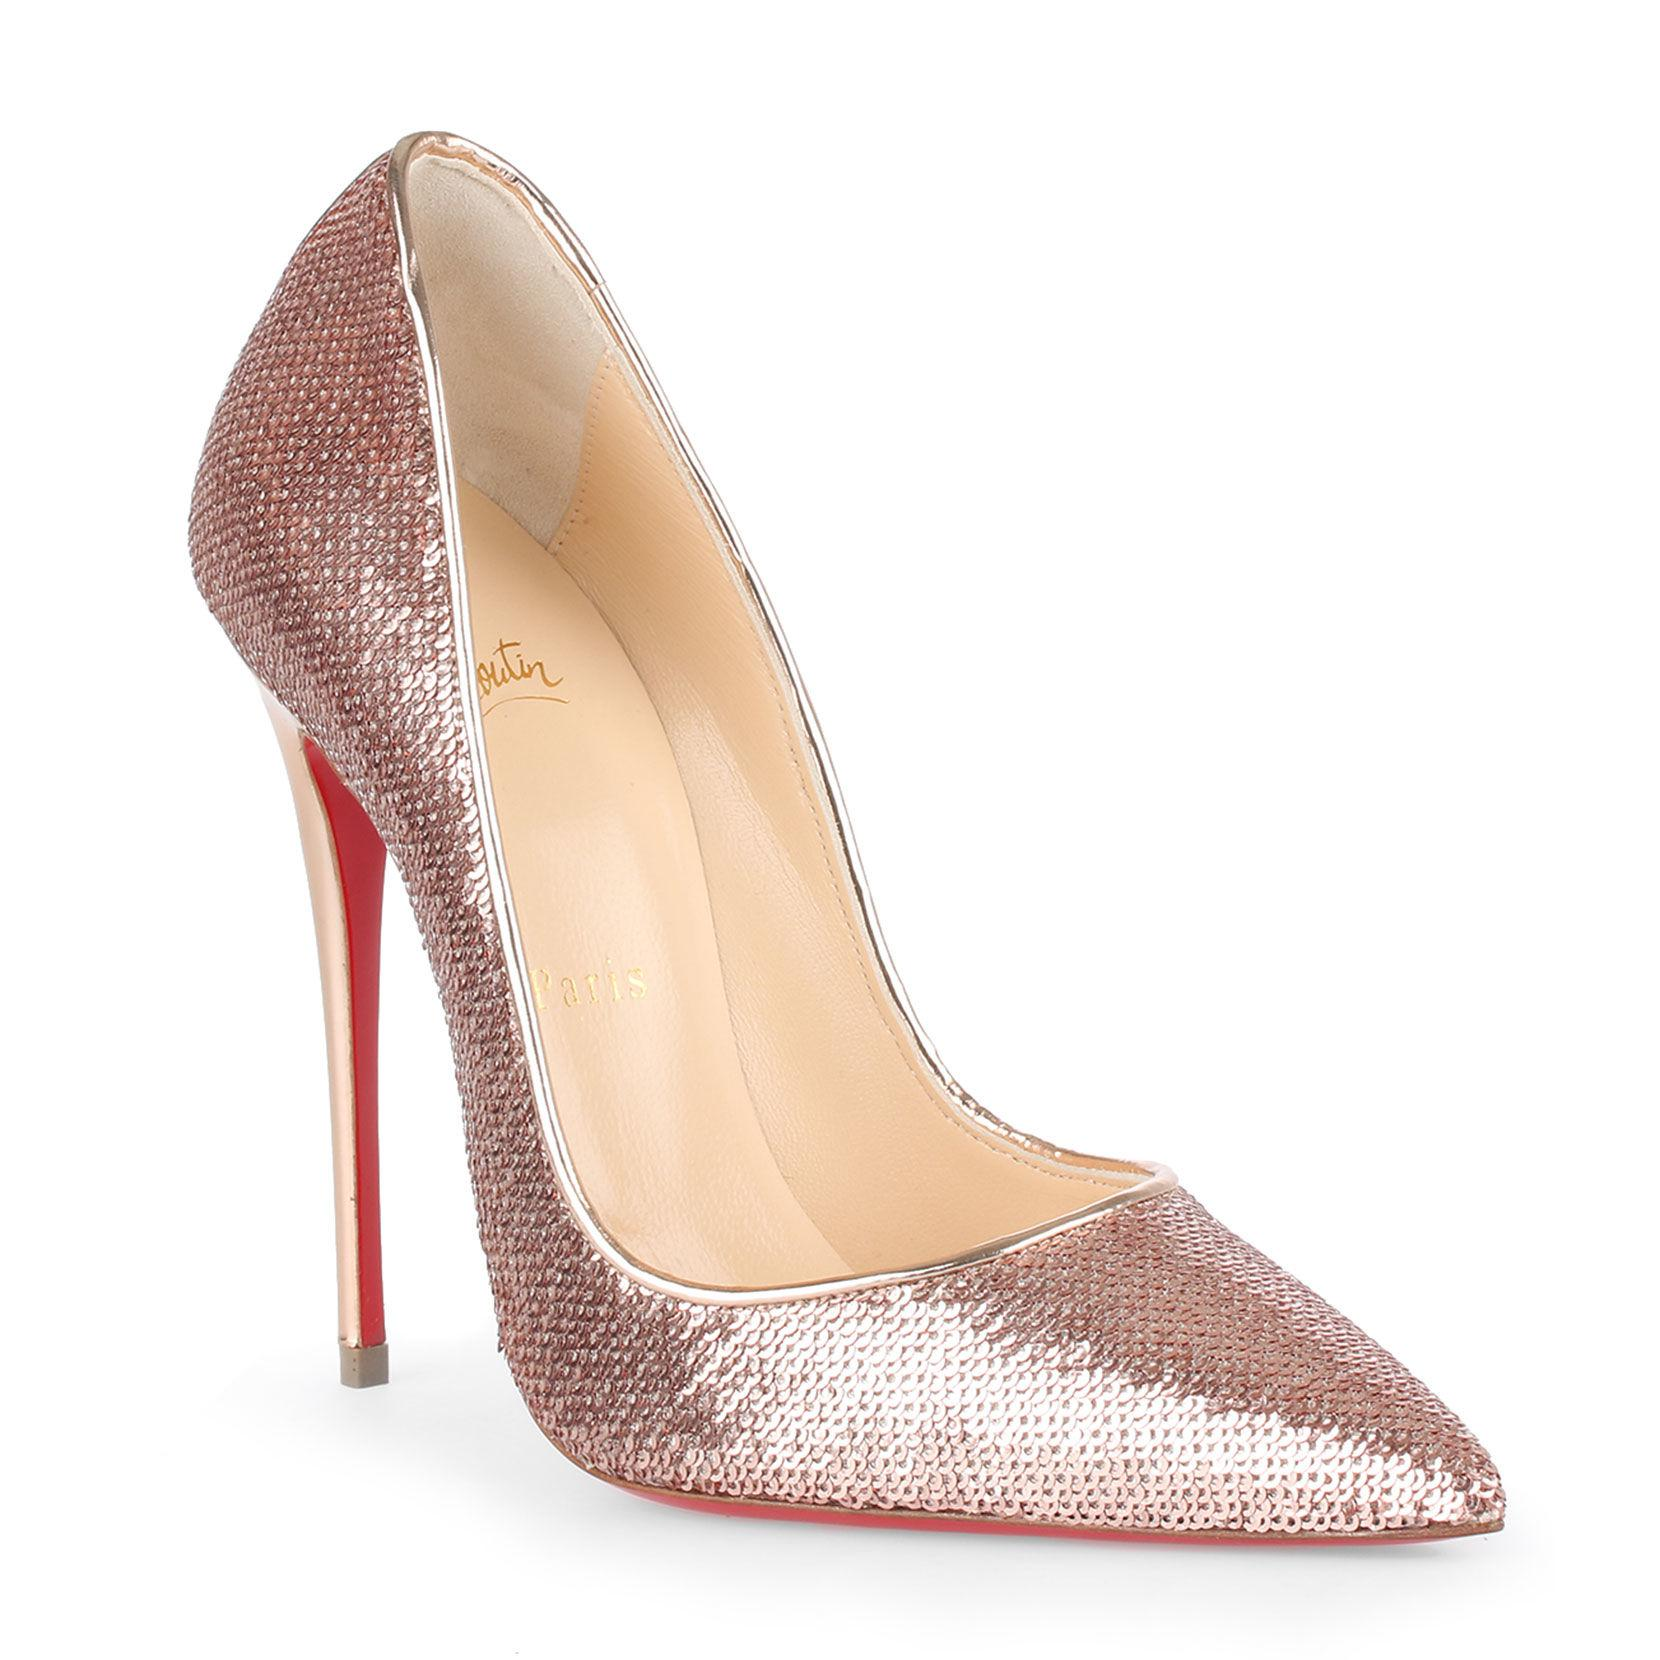 97d09a382fe3 Lyst - Christian Louboutin So Kate 120 Blush Sequin Pumps in Pink